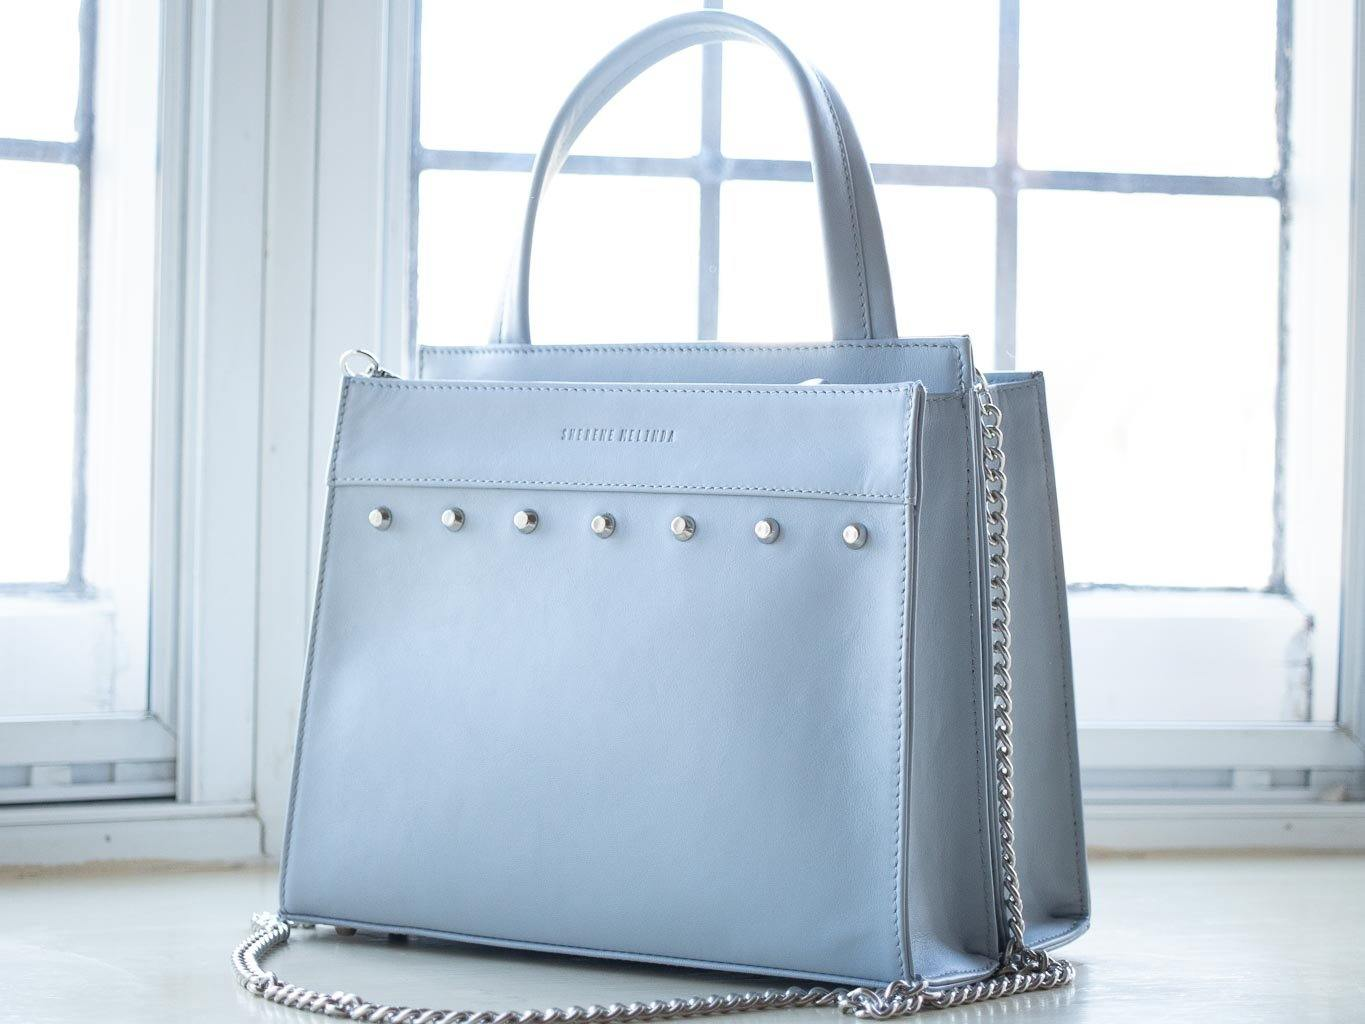 Top Handle Studded Handbag in Baby Blue by Sherene Melinda